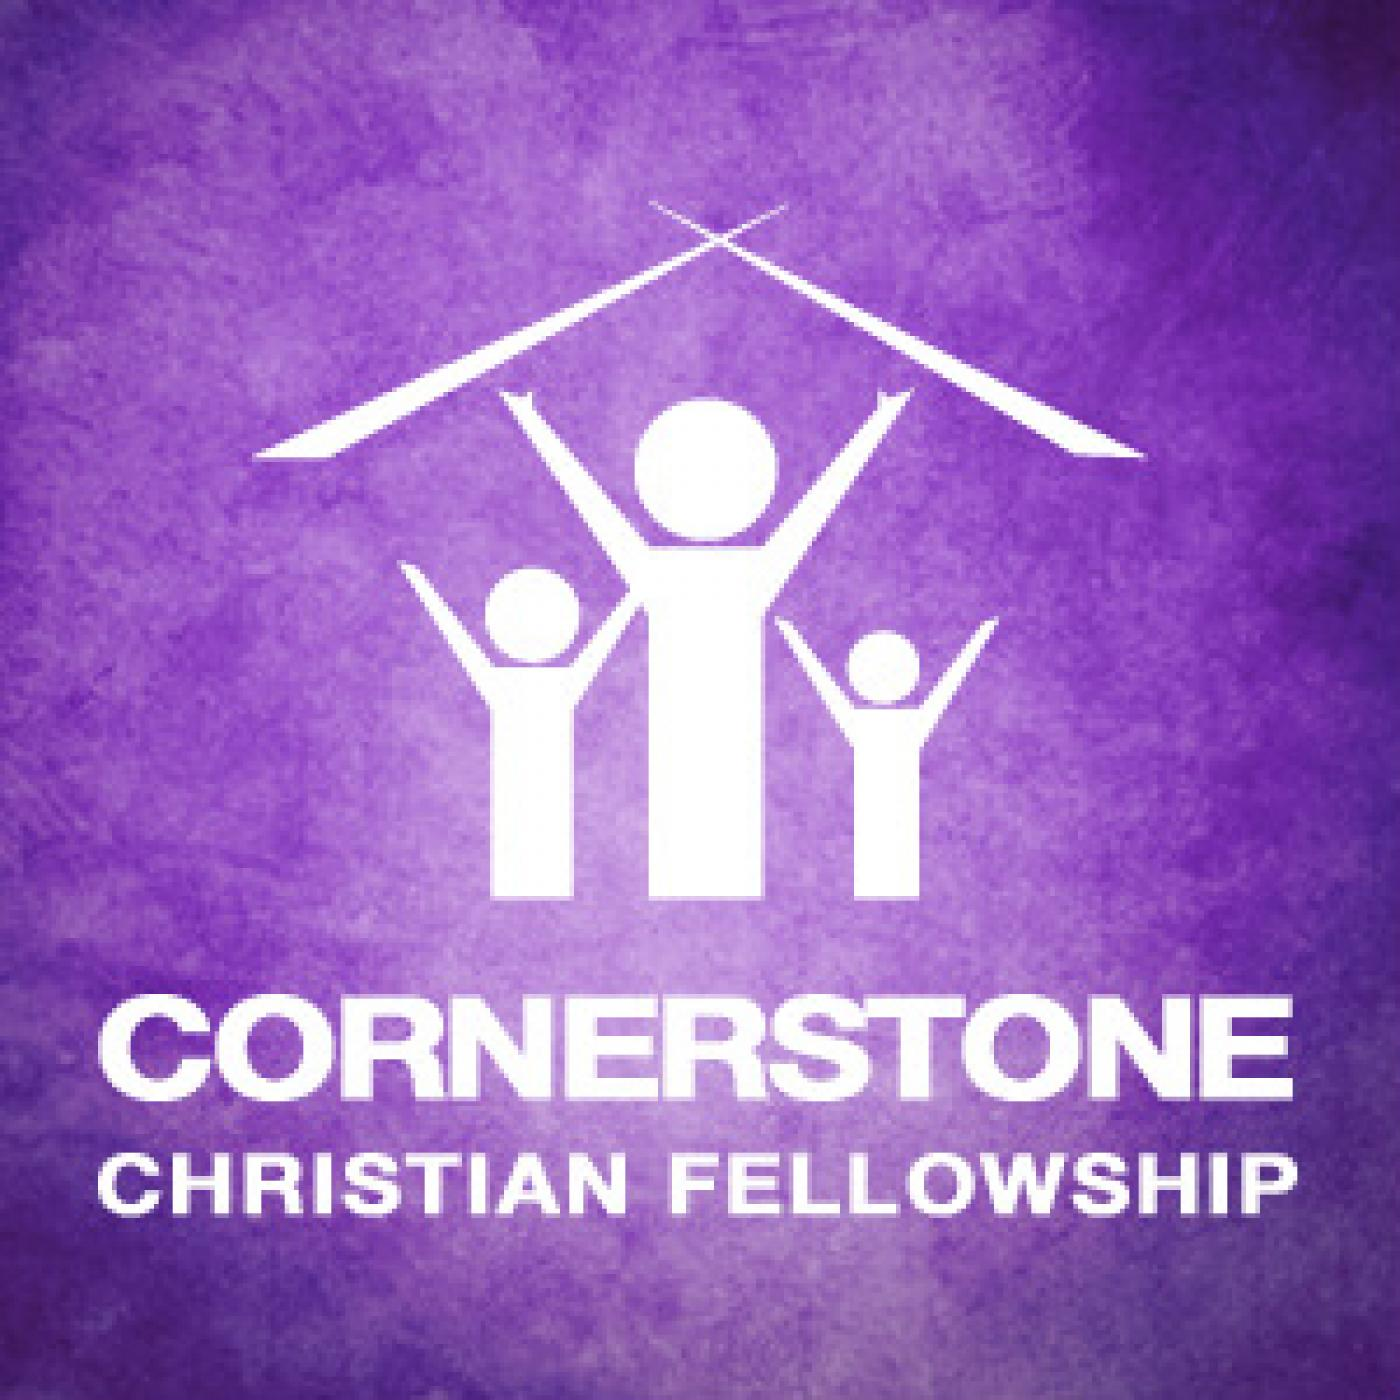 Cornerstone Christian Fellowship